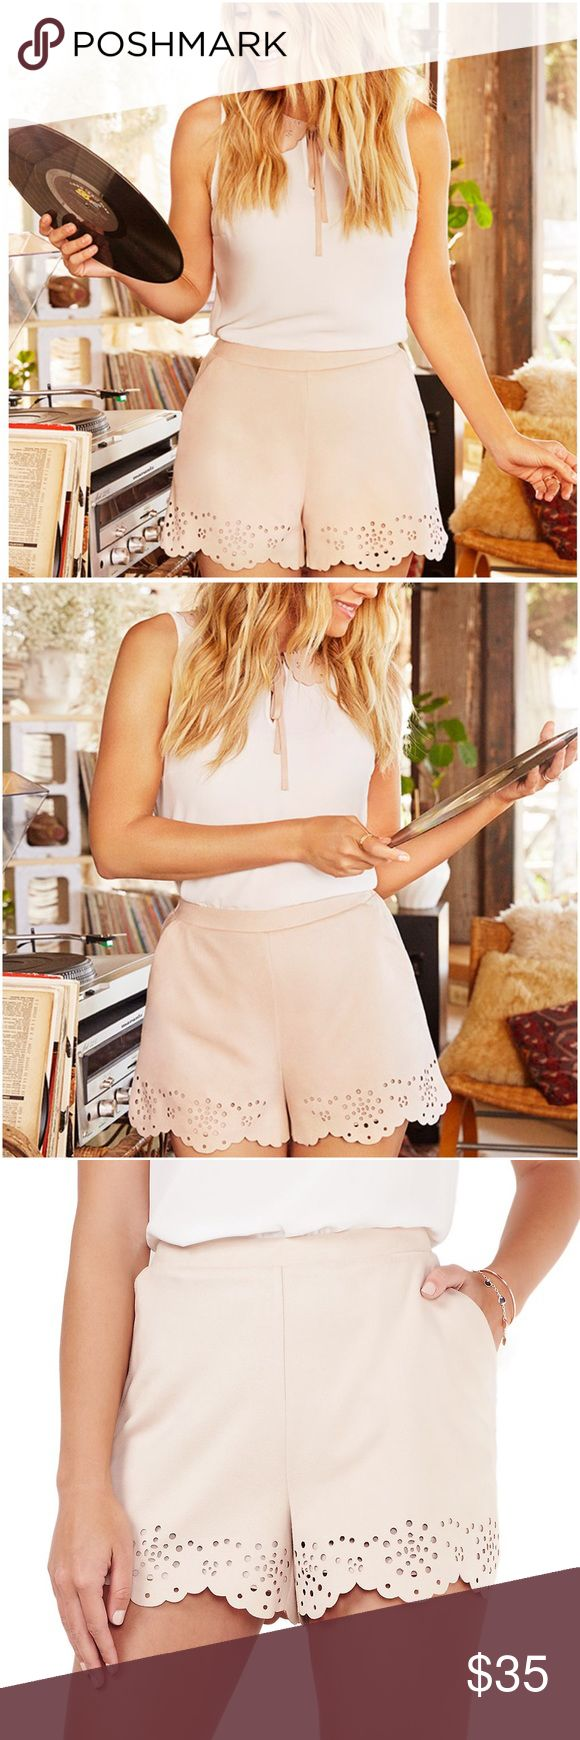 """LAUREN CONRAD Blush Pink Faux-Suede Eyelet Shorts NWT LC LAUREN CONRAD super soft blush pink scalloped faux-suede eyelet shorts will elevate your warm weather wardrobe!  The scalloped eyelet hem adds a sophisticated touch to your casual style.  XS 0-2 (27"""" waist), S 4-6 (29"""" waist), M 8-10 (31"""" waist), L 12-14 (34"""" waist), XL 16-18 (37"""" waist) Scalloped hem with eyelet details 2 front pockets Faux-suede Lined 3 1/2-in. inseam Midrise sits above the hip Elastic waistband Polyester Machine…"""